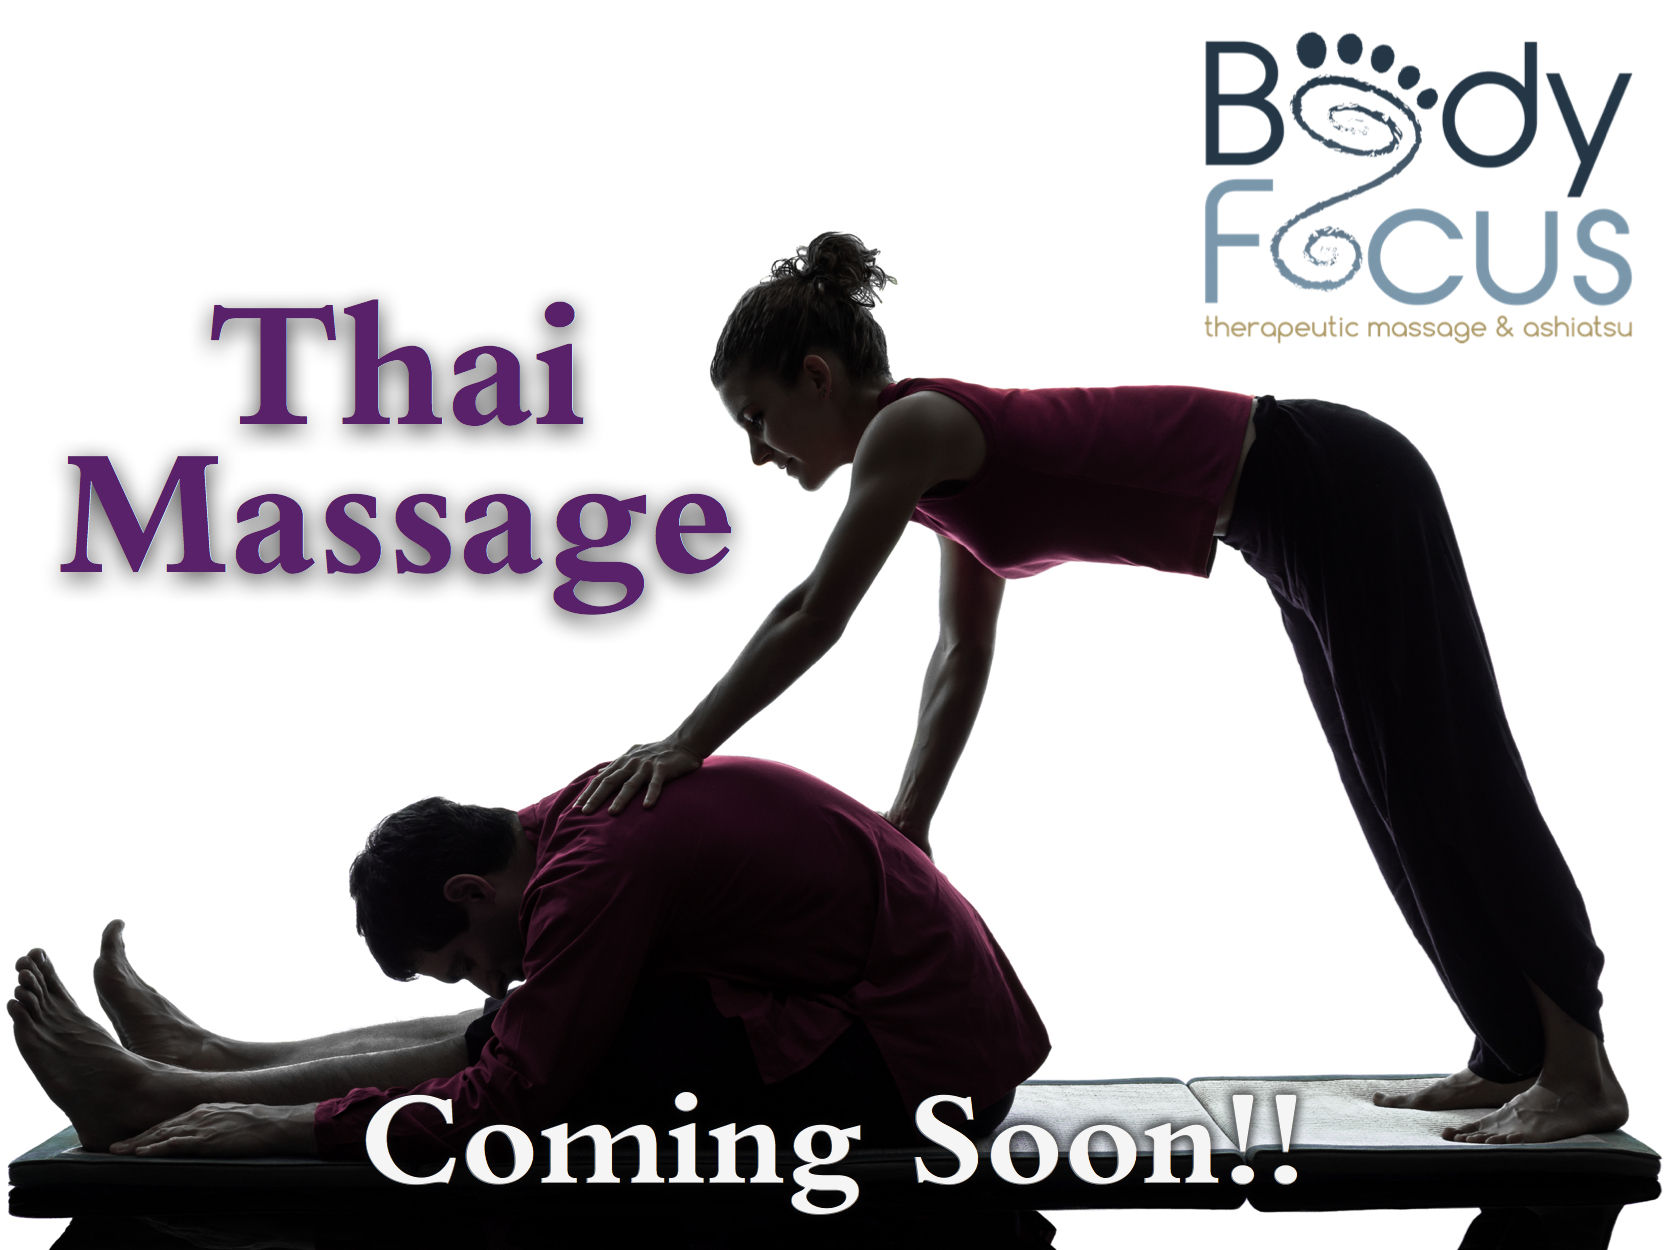 Body Focus Therapeutic Massage Thai Massage Coming Soon